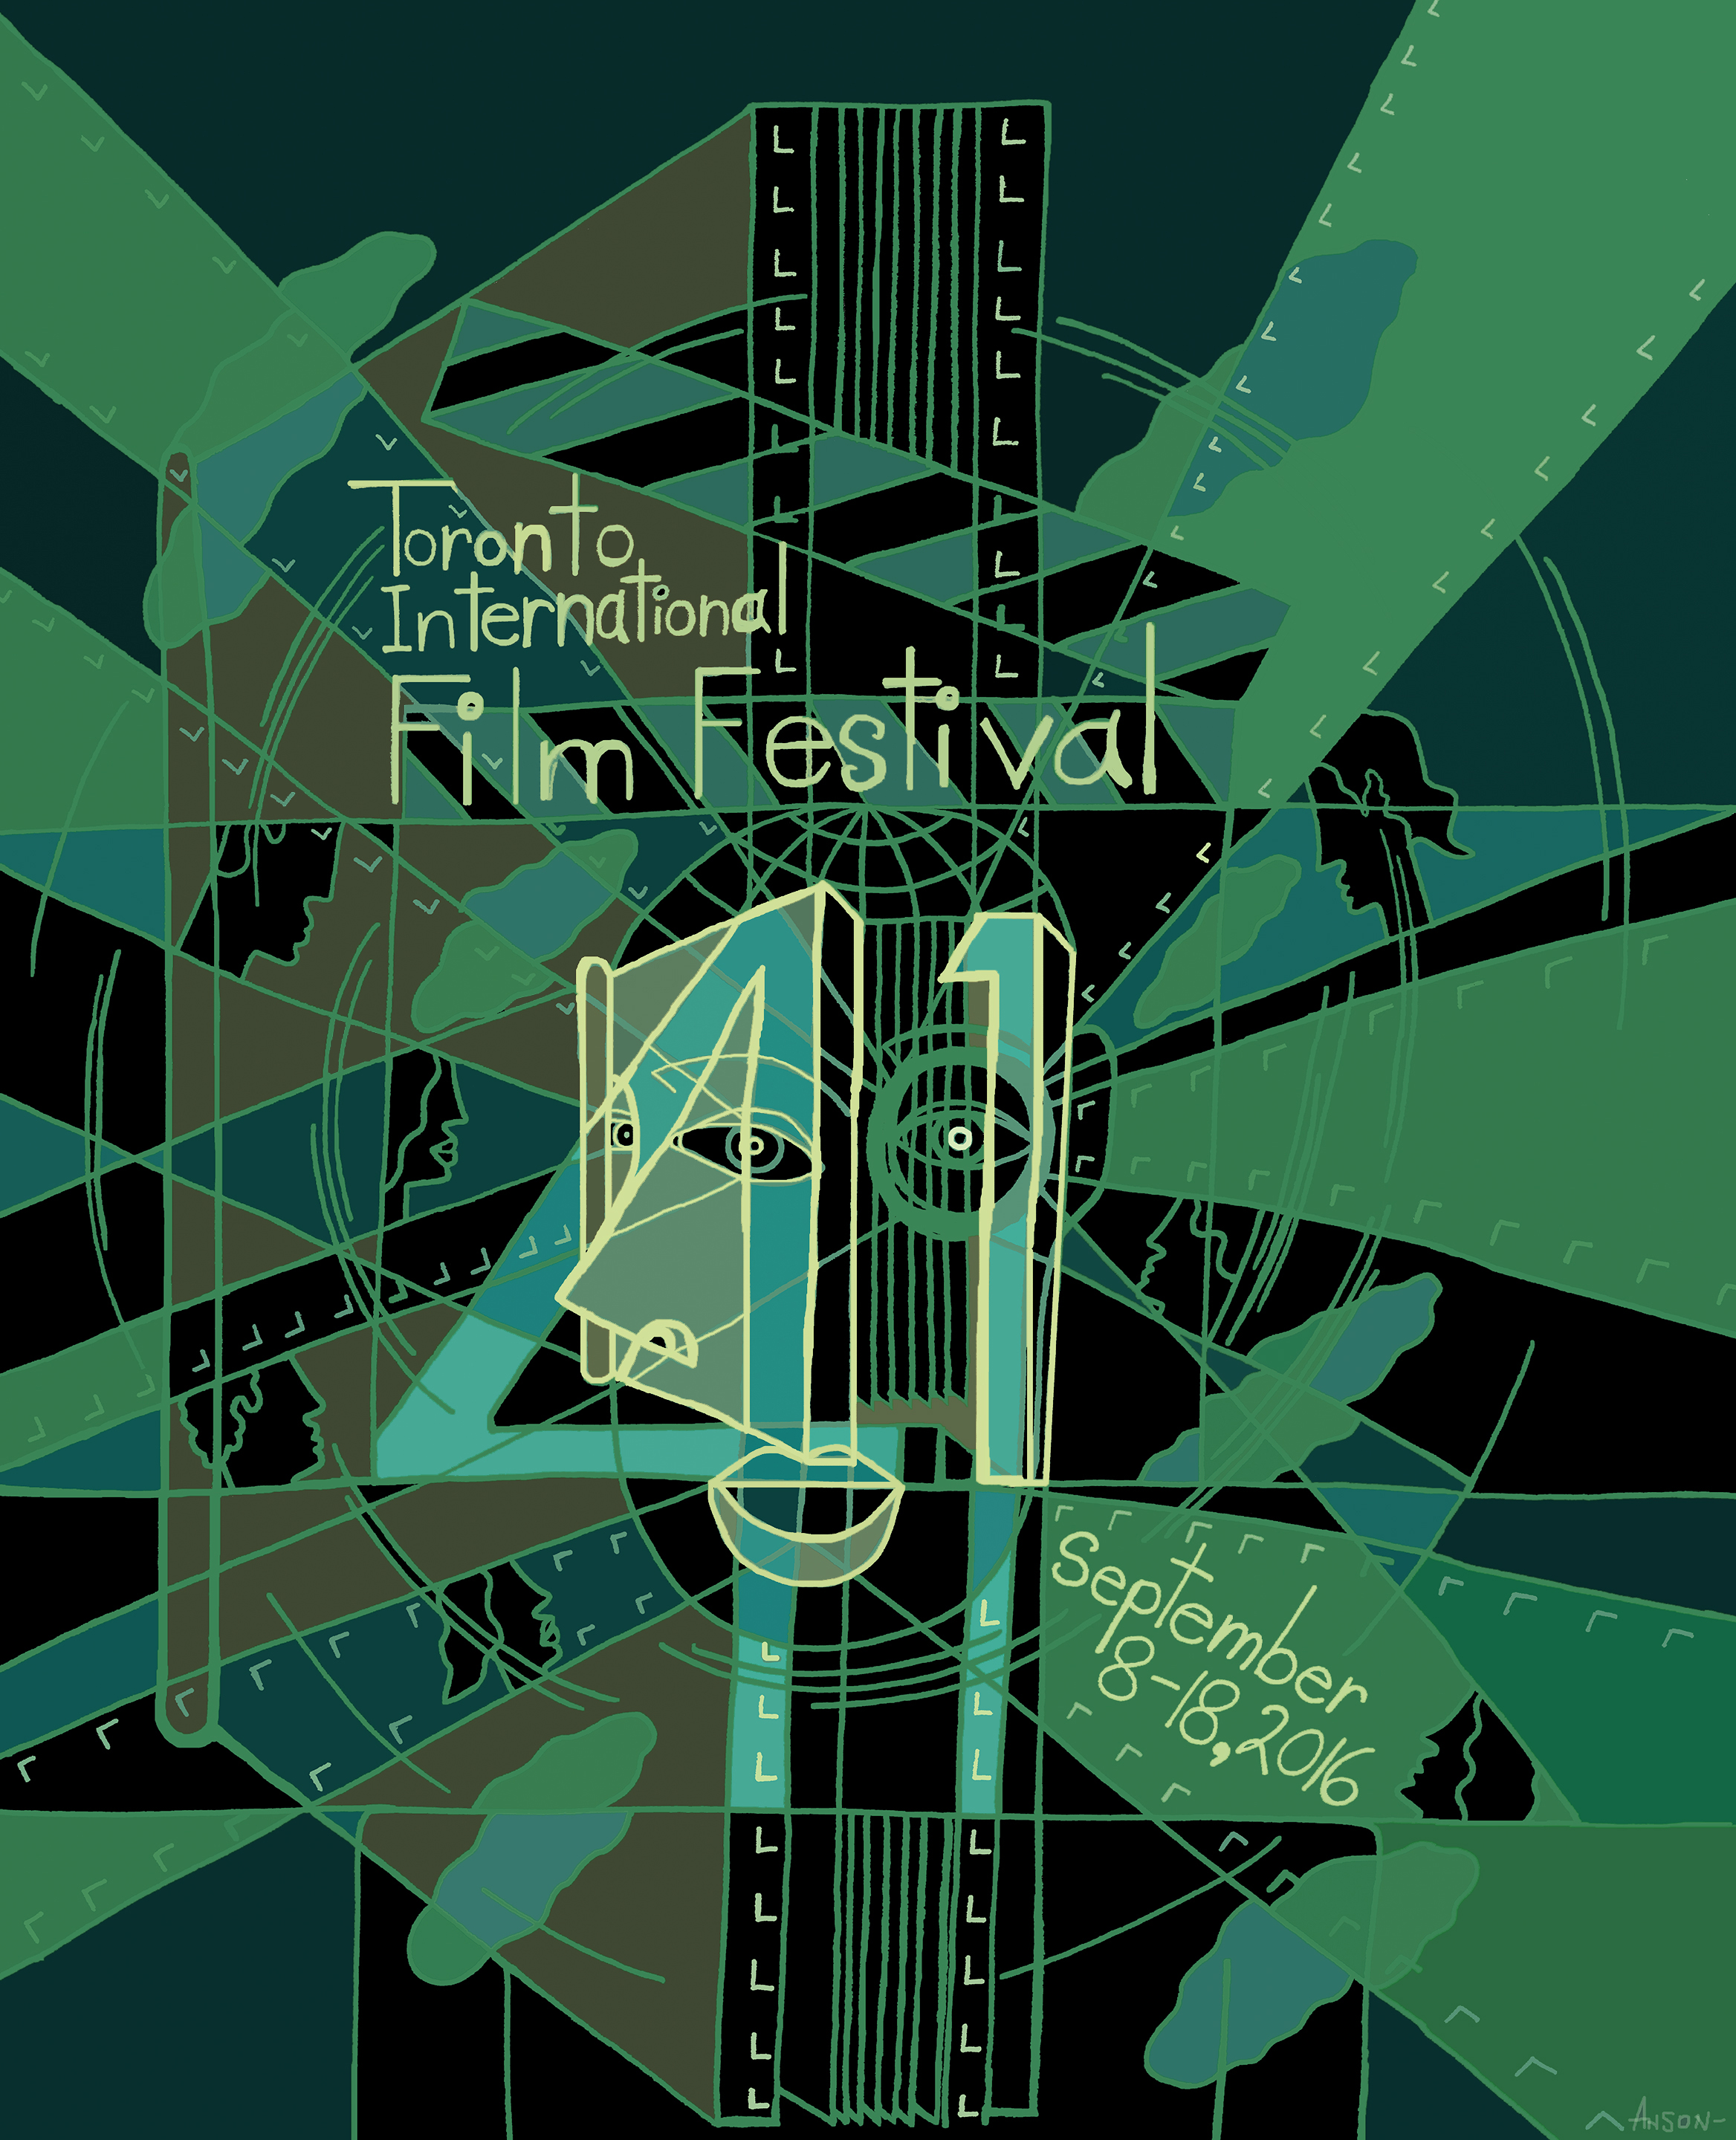 2016 annual 41st Toronto International Film Festival   poster version 2_Anson Liaw